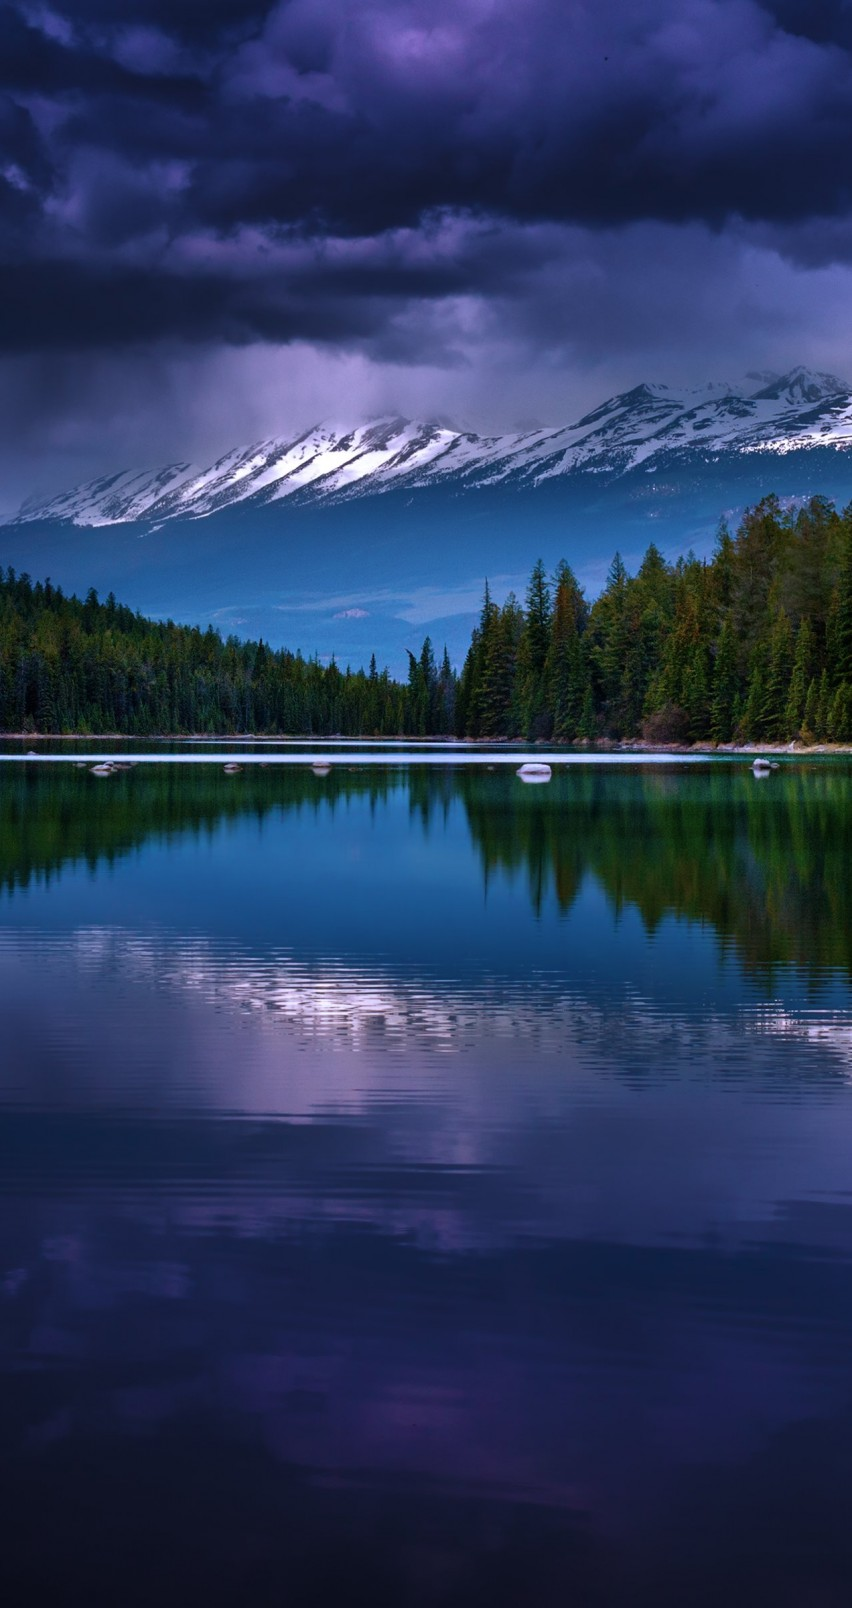 First Lake, Alberta, Canada Wallpaper for Apple iPhone 6 / 6s